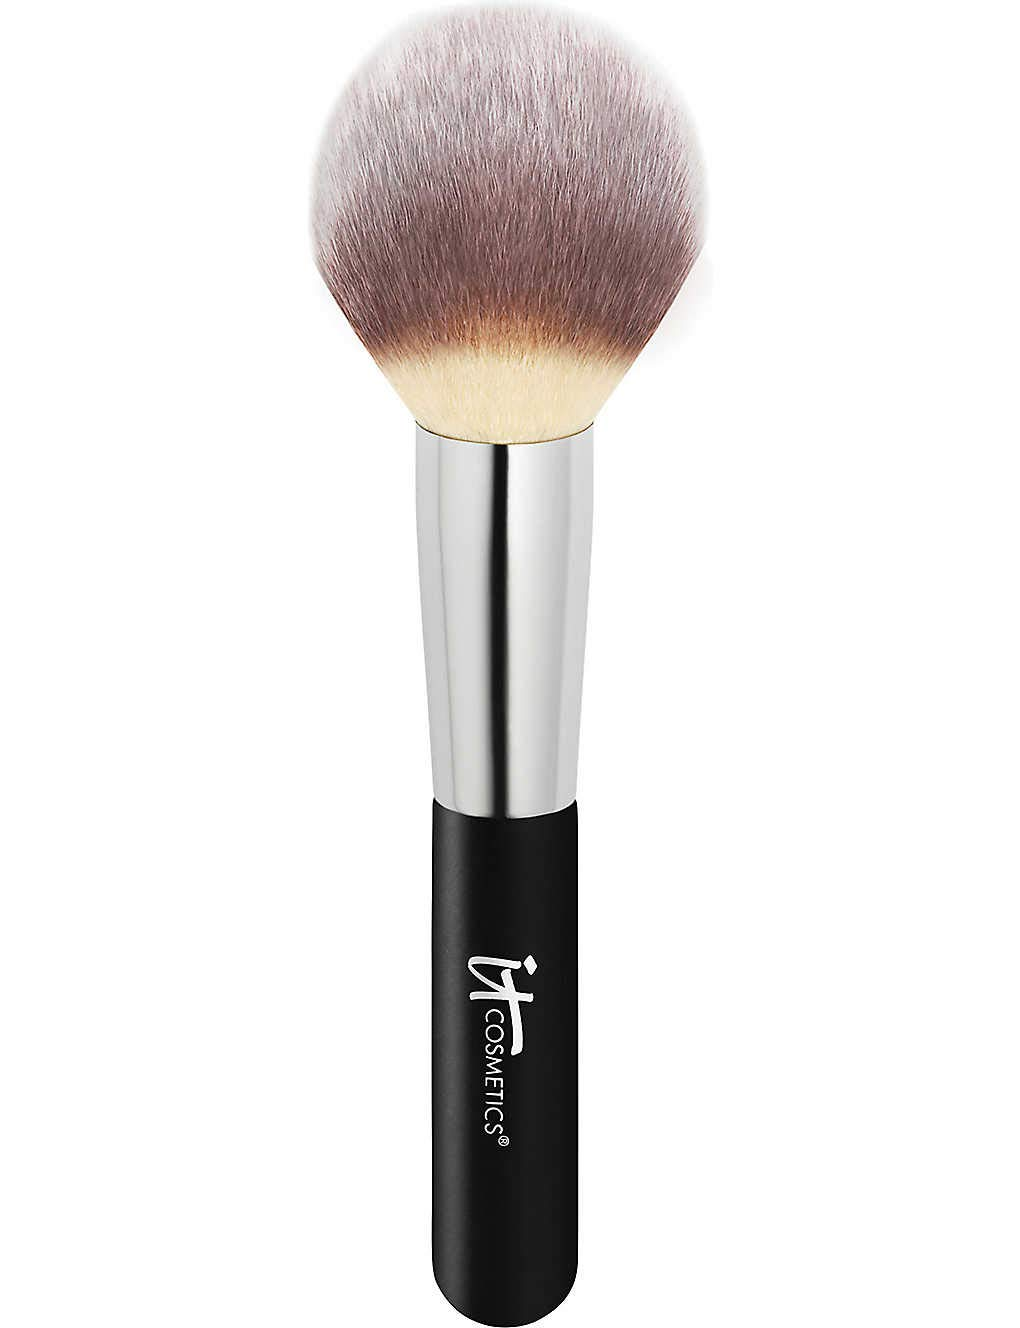 IT Cosmetics Heavenly Luxe Wand Ball Powder Brush #8 - Soft, Rounded, Tapered Brush - For Loose & Pressed Powder - Poreless, Optical-Blurring Finish - With Award-Winning Heavenly Luxe Hair